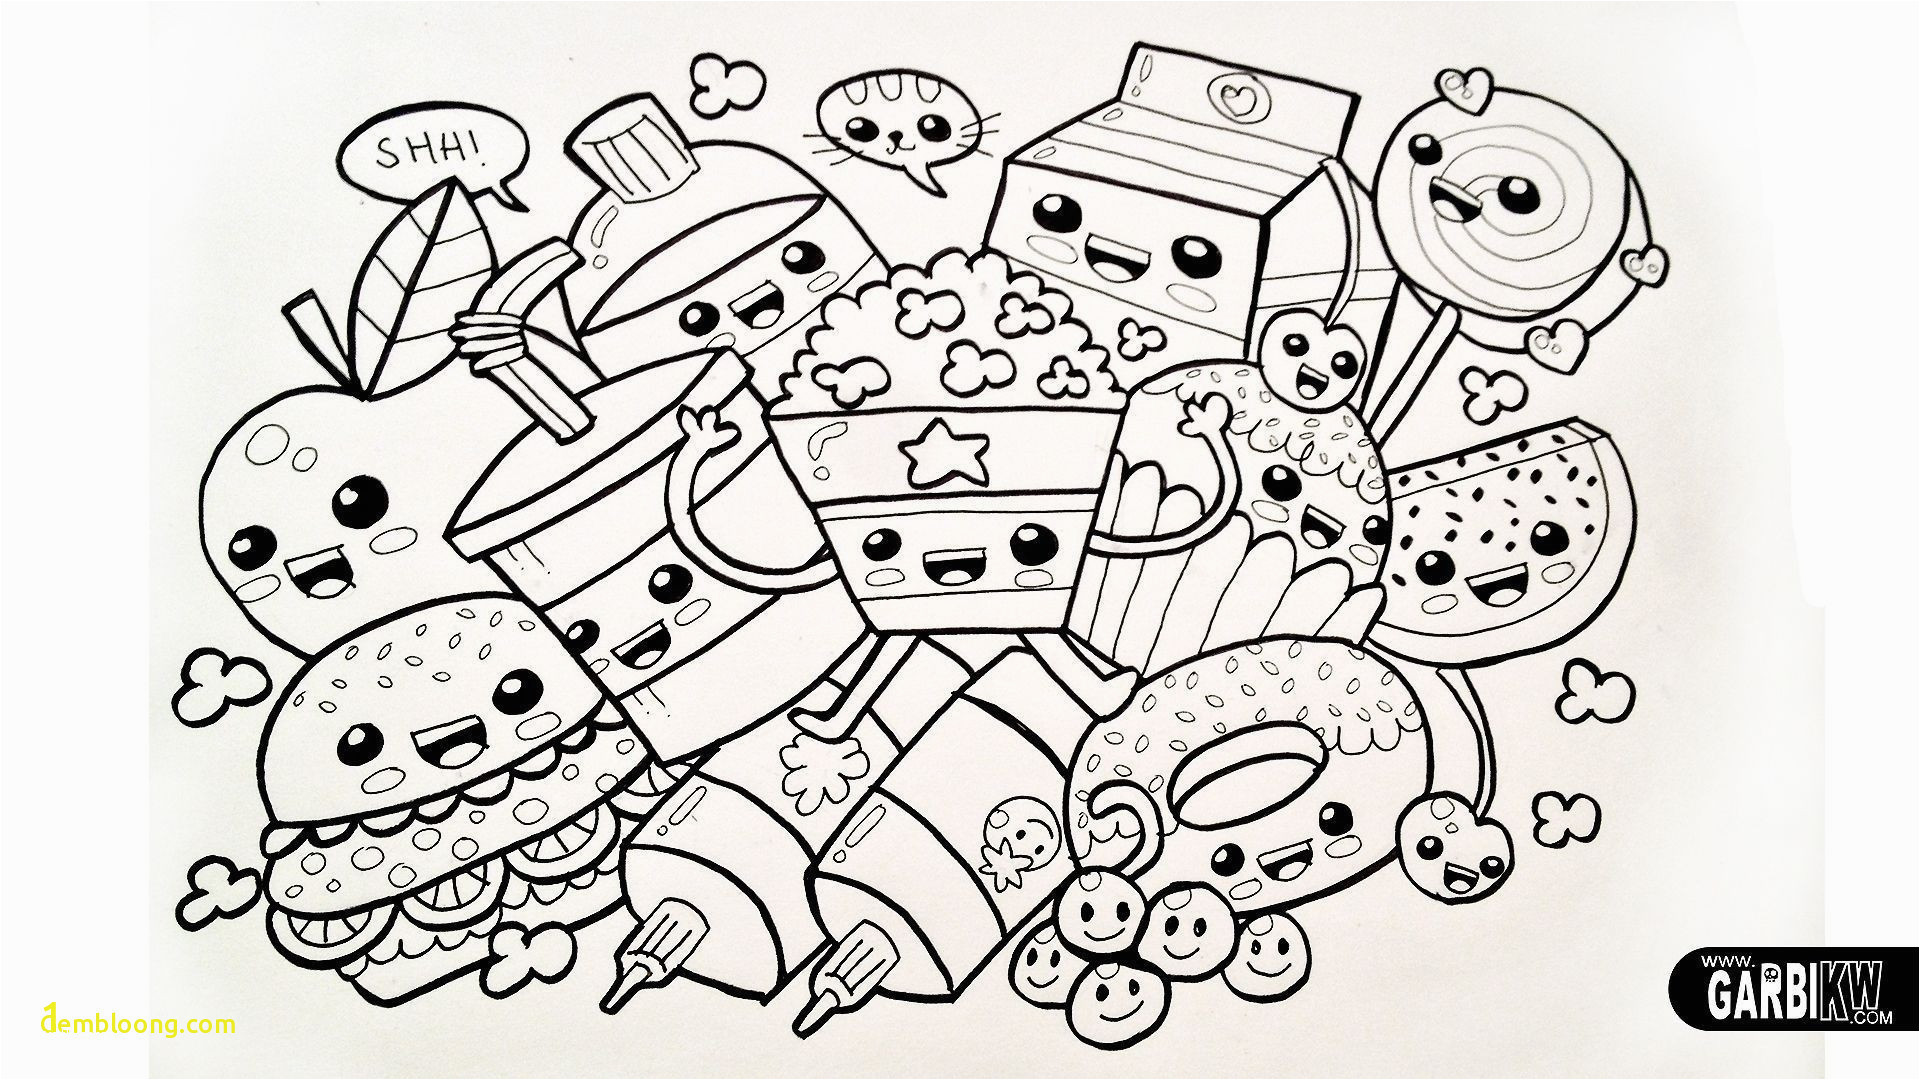 coloring book pictures of animals art coloring pages animal coloring books for kids animal cell of coloring book pictures of animals